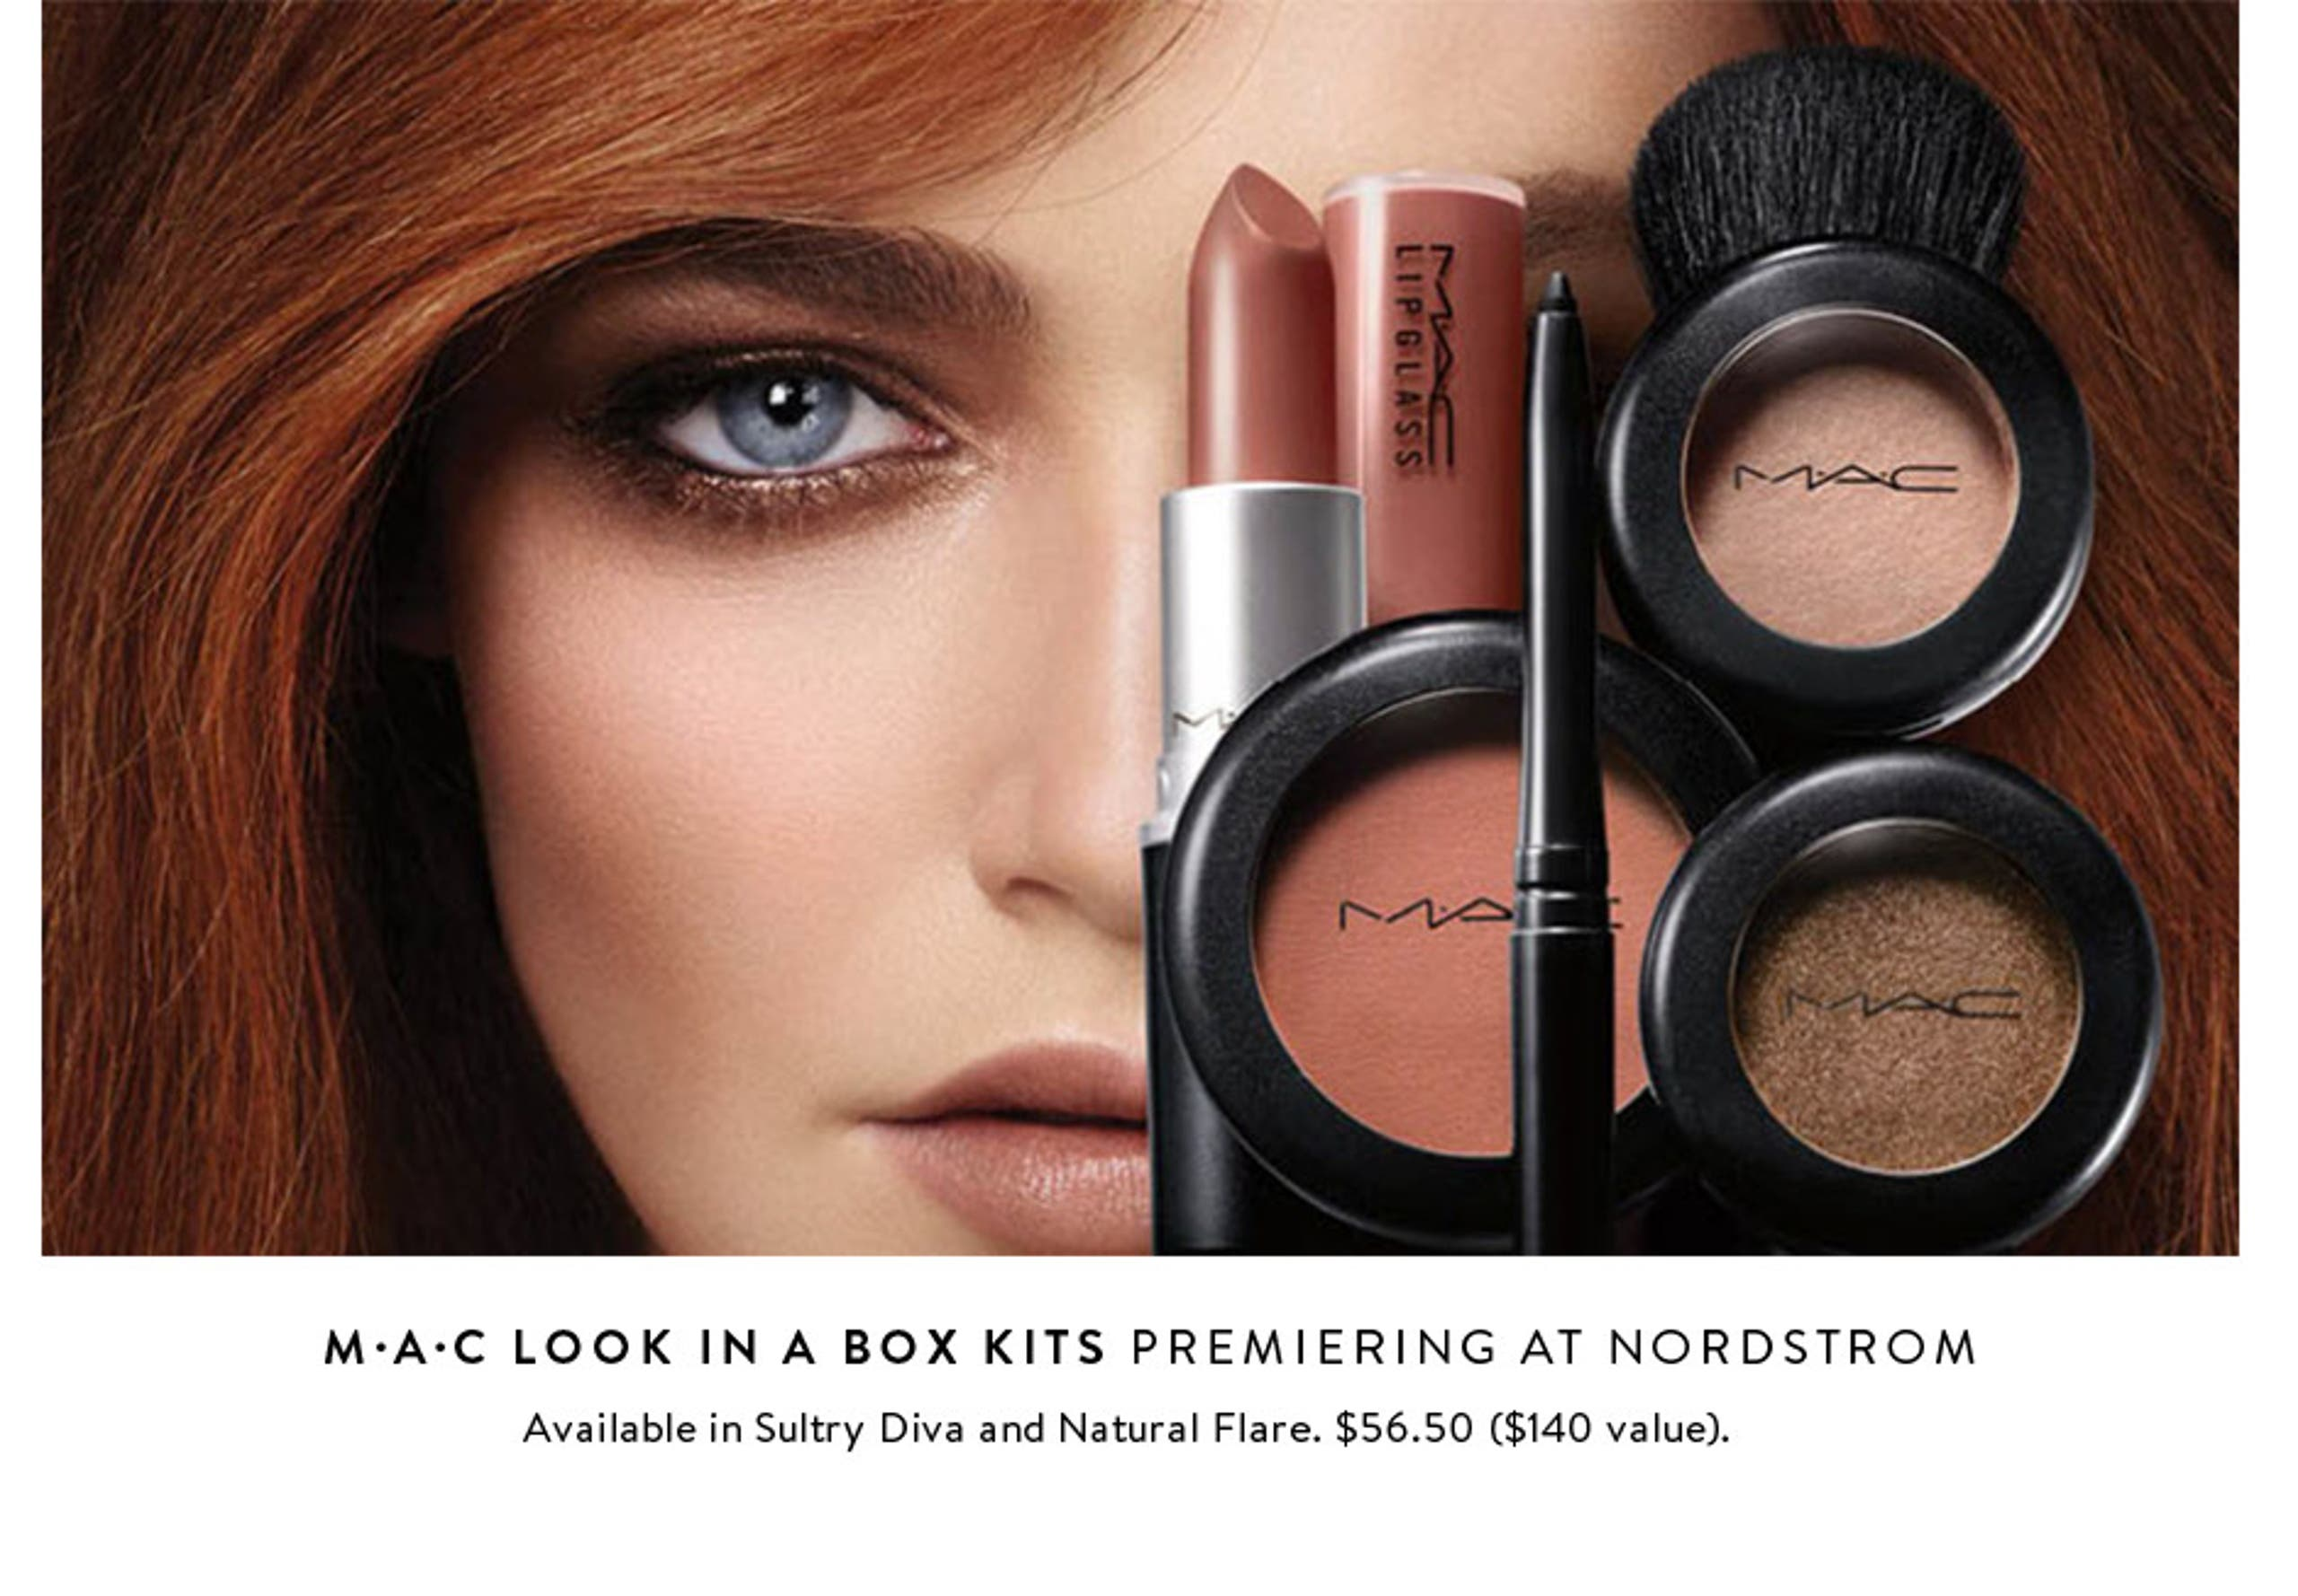 Premiering at Nordstrom: M·A·C Look In A Box Kits.